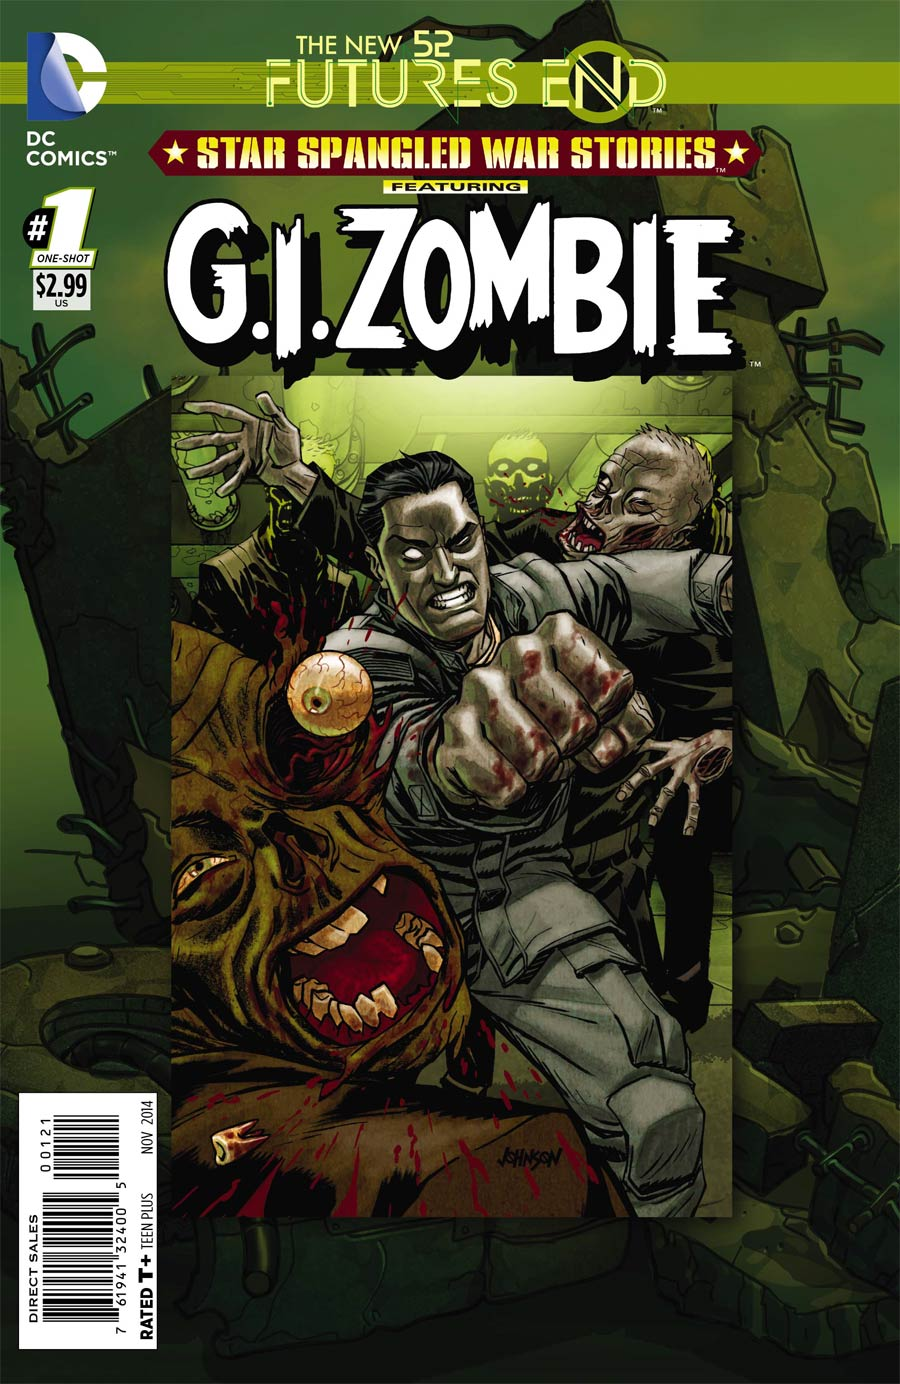 Star-Spangled War Stories Featuring GI Zombie Futures End #1 Cover B Standard Cover